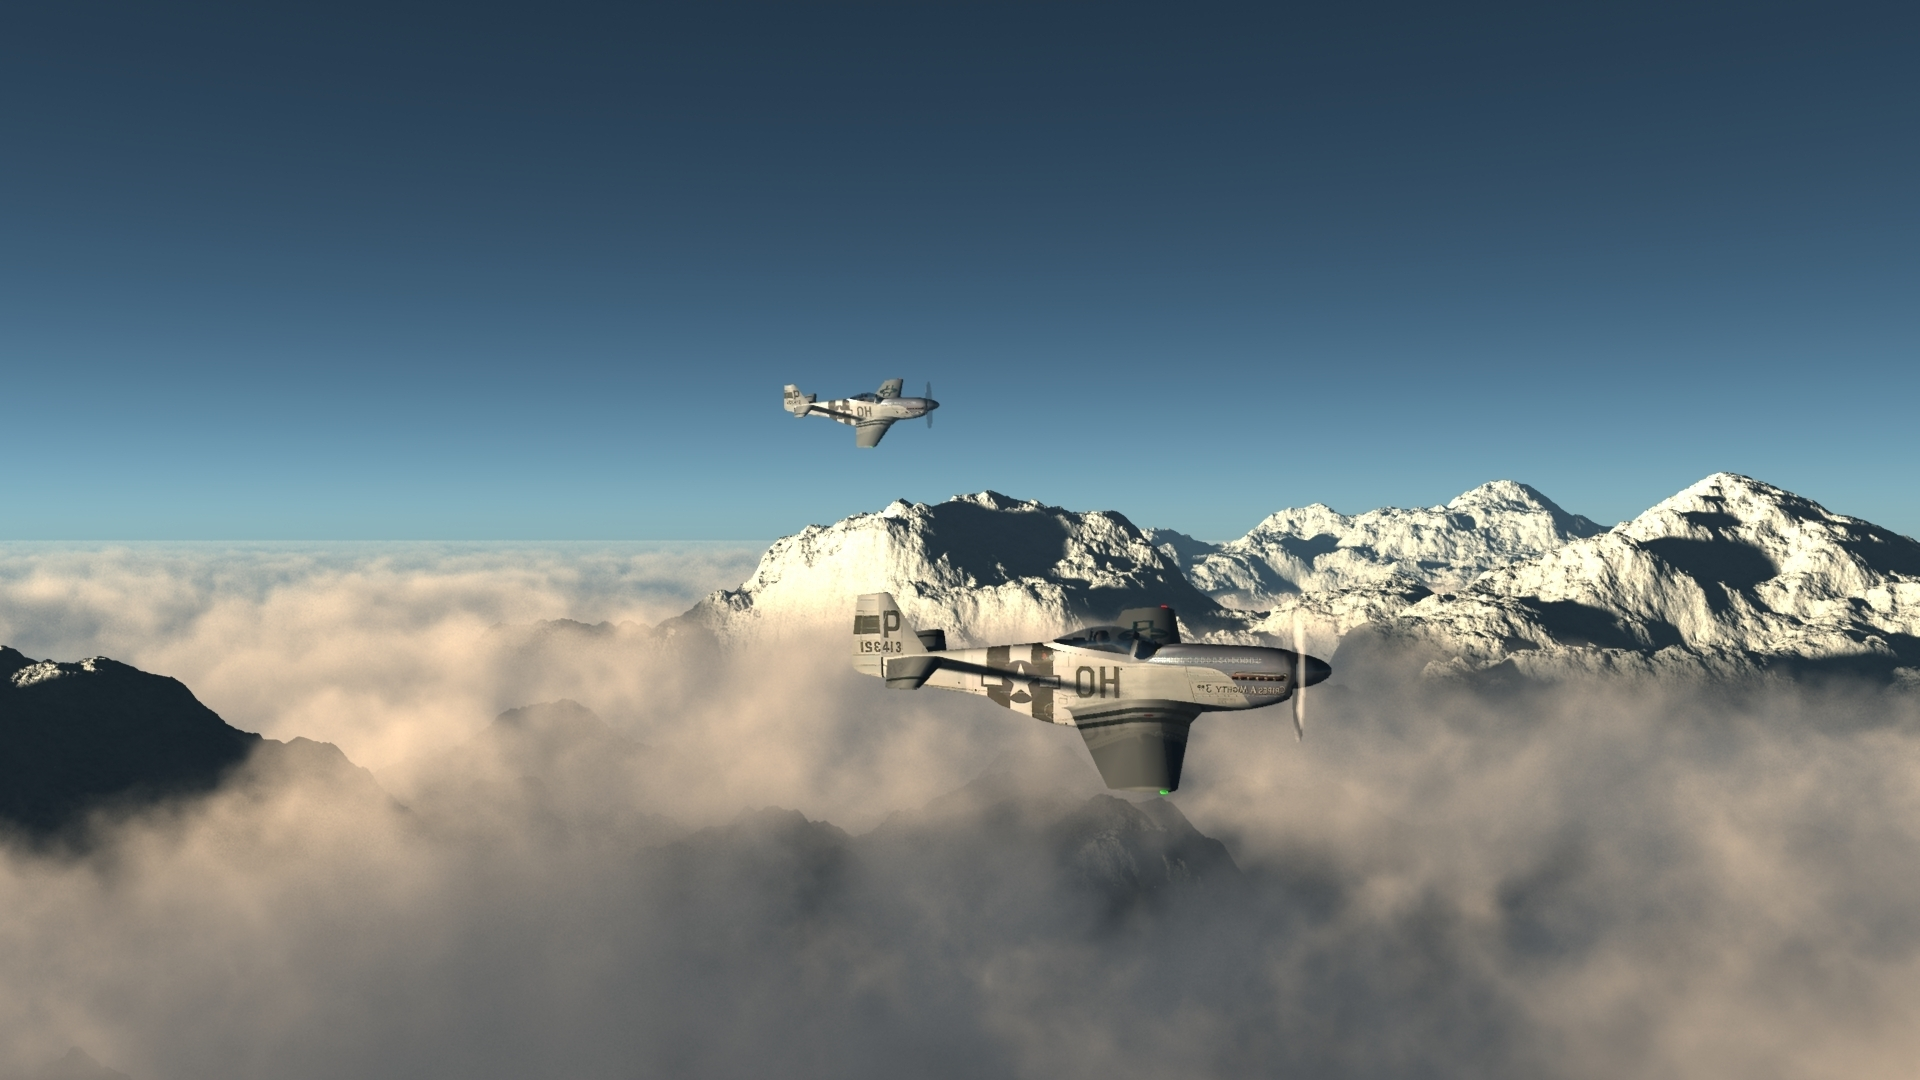 Aviation HD Wallpaper